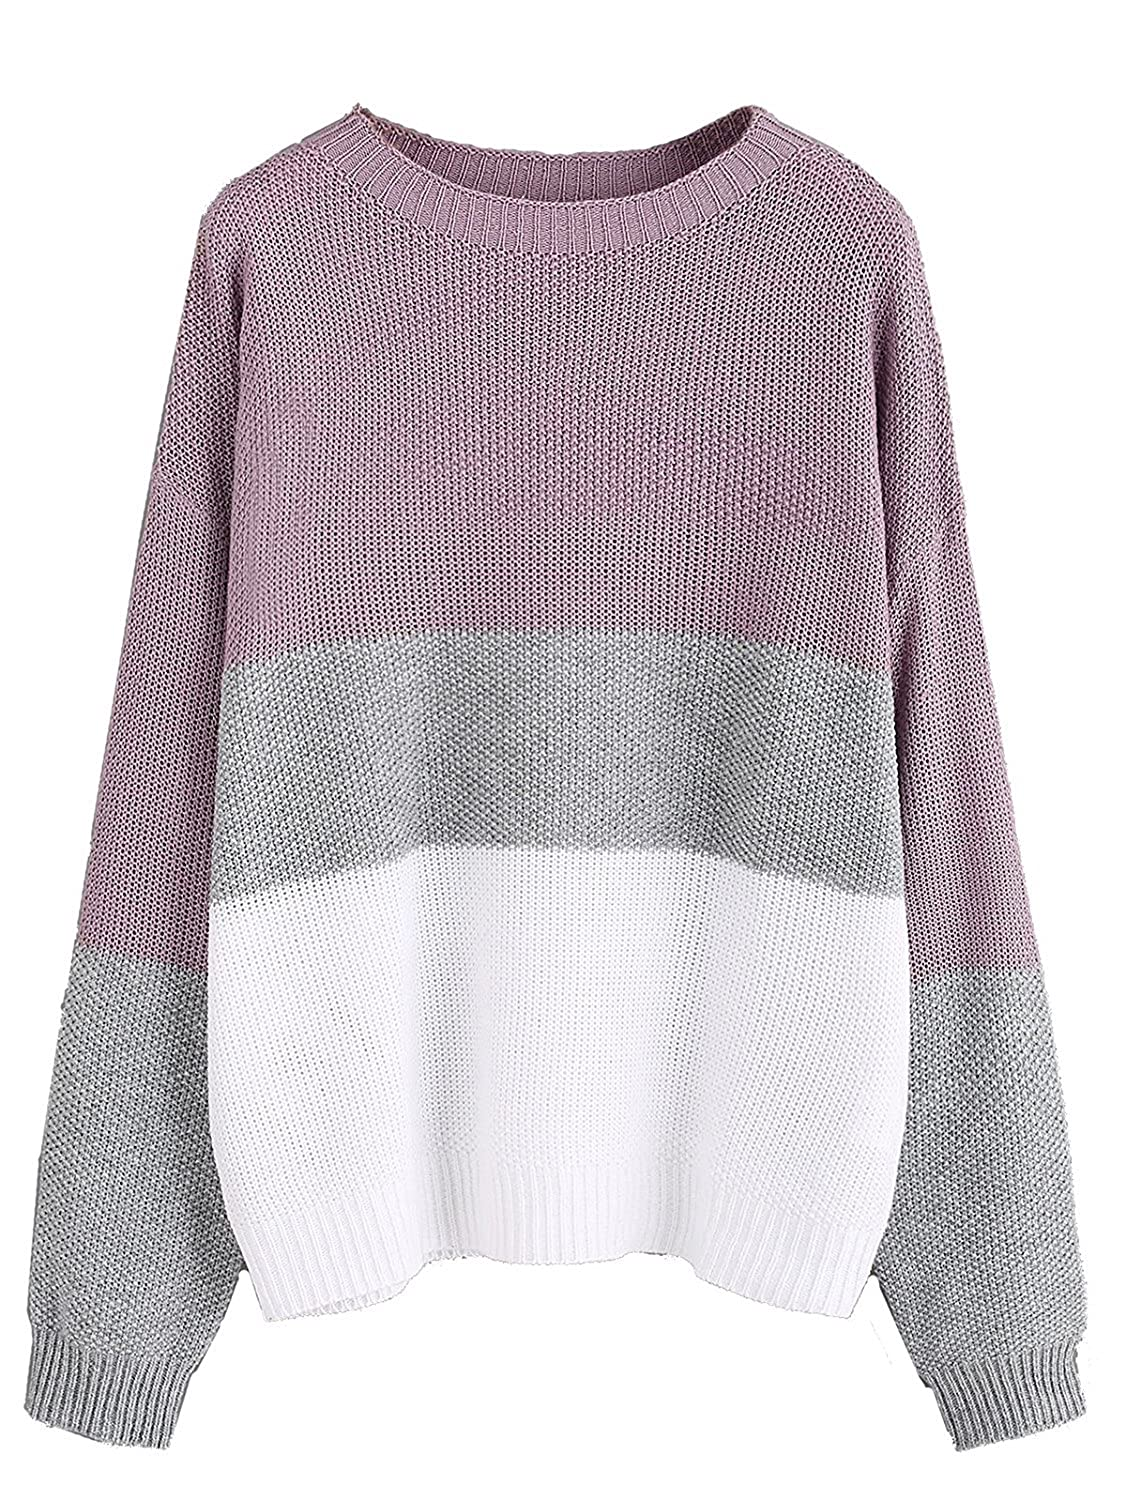 Milumia Women s Drop Shoulder Color Block Textured Jumper Casual Sweater at  Amazon Women s Clothing store  56659f0ea